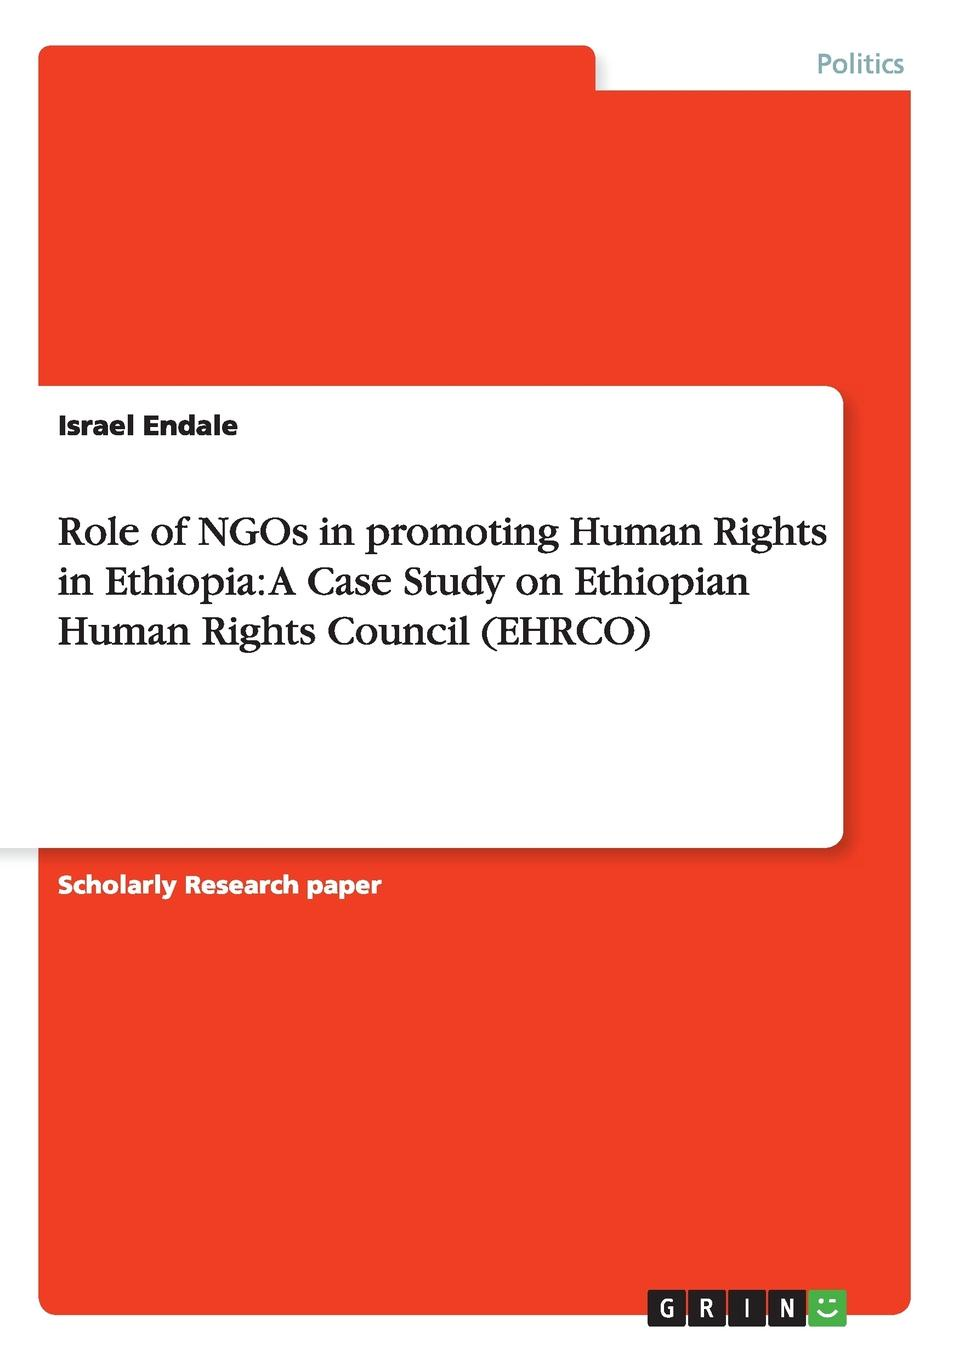 Israel Endale Role of NGOs in promoting Human Rights in Ethiopia. A Case Study on Ethiopian Human Rights Council (EHRCO) israel endale role of ngos in promoting human rights in ethiopia a case study on ethiopian human rights council ehrco